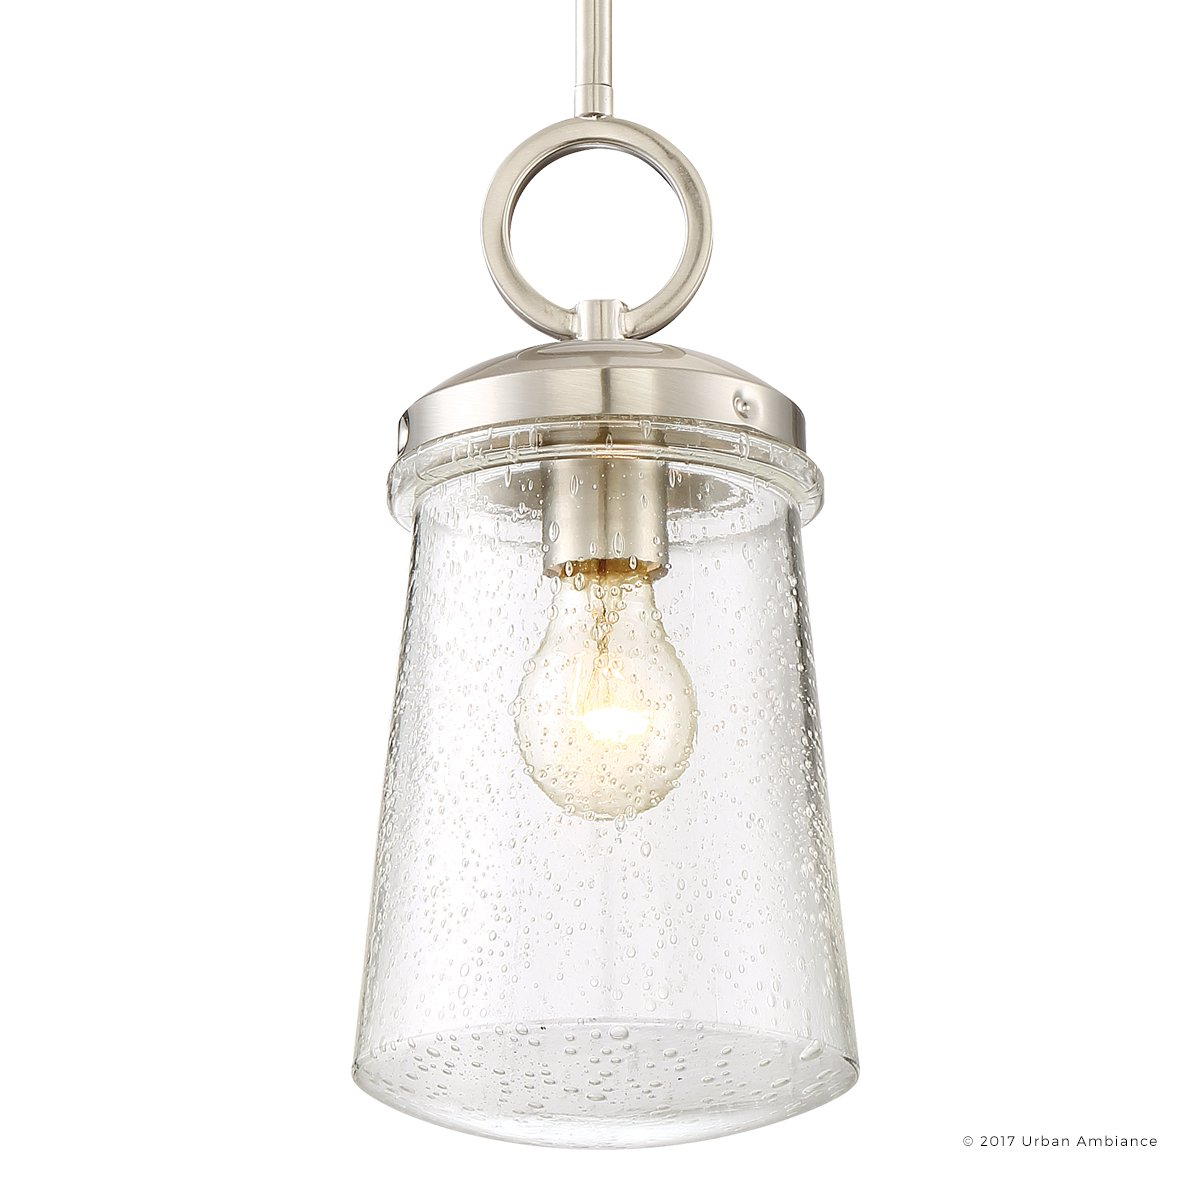 Luxury Contemporary Hanging Pendant Light, Small Size: 13''H x 6''W, with Art Deco Style Elements, Pretty Brushed Nickel Finish and Seeded Glass, UQL2641 by Urban Ambiance